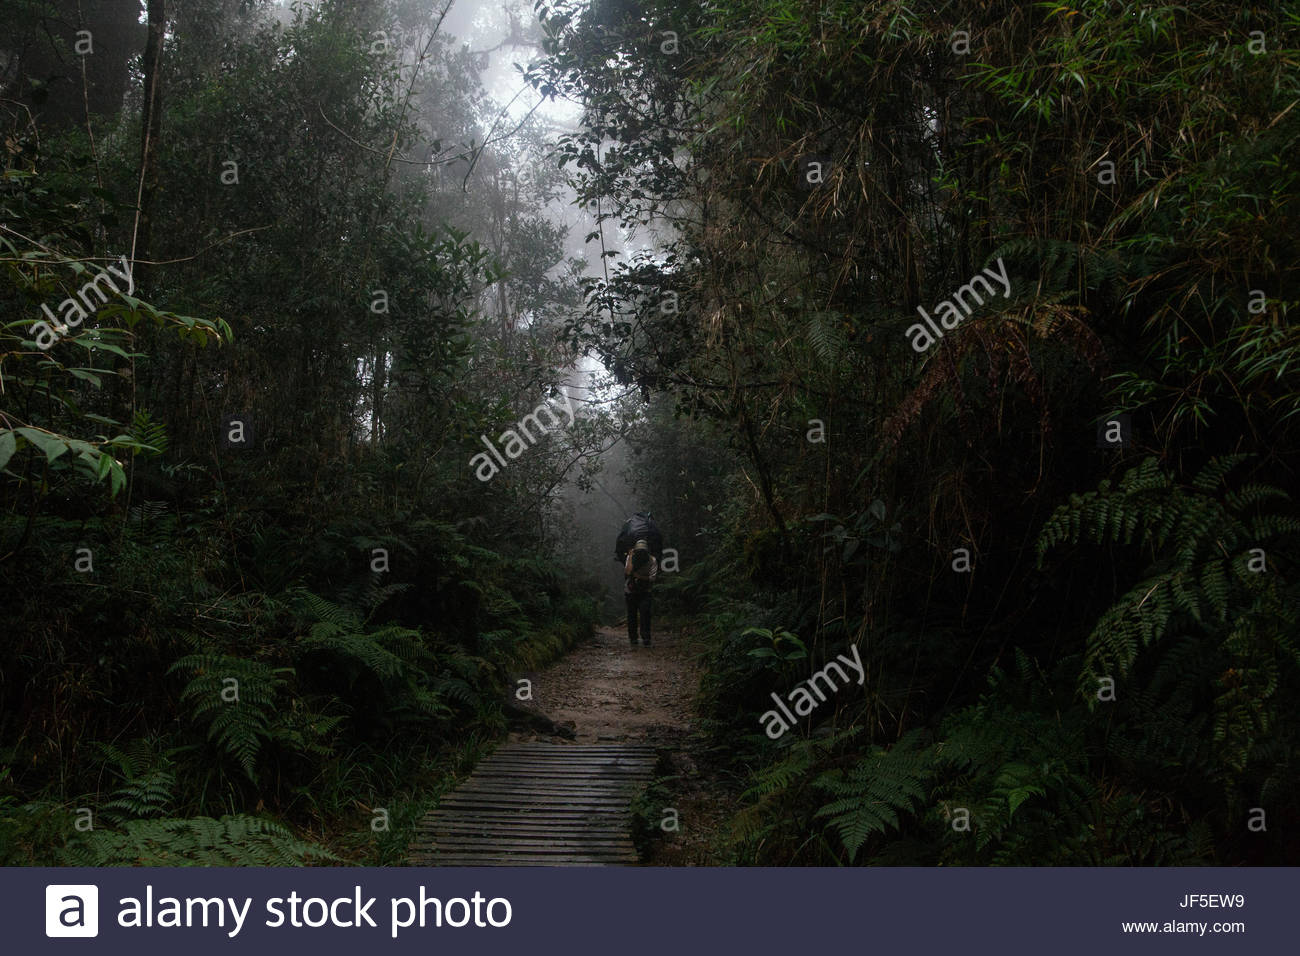 A porter walks in the jungles of Borneo, heading for Mount Kinabalu, one of the highest points in South East Asia. - Stock Image